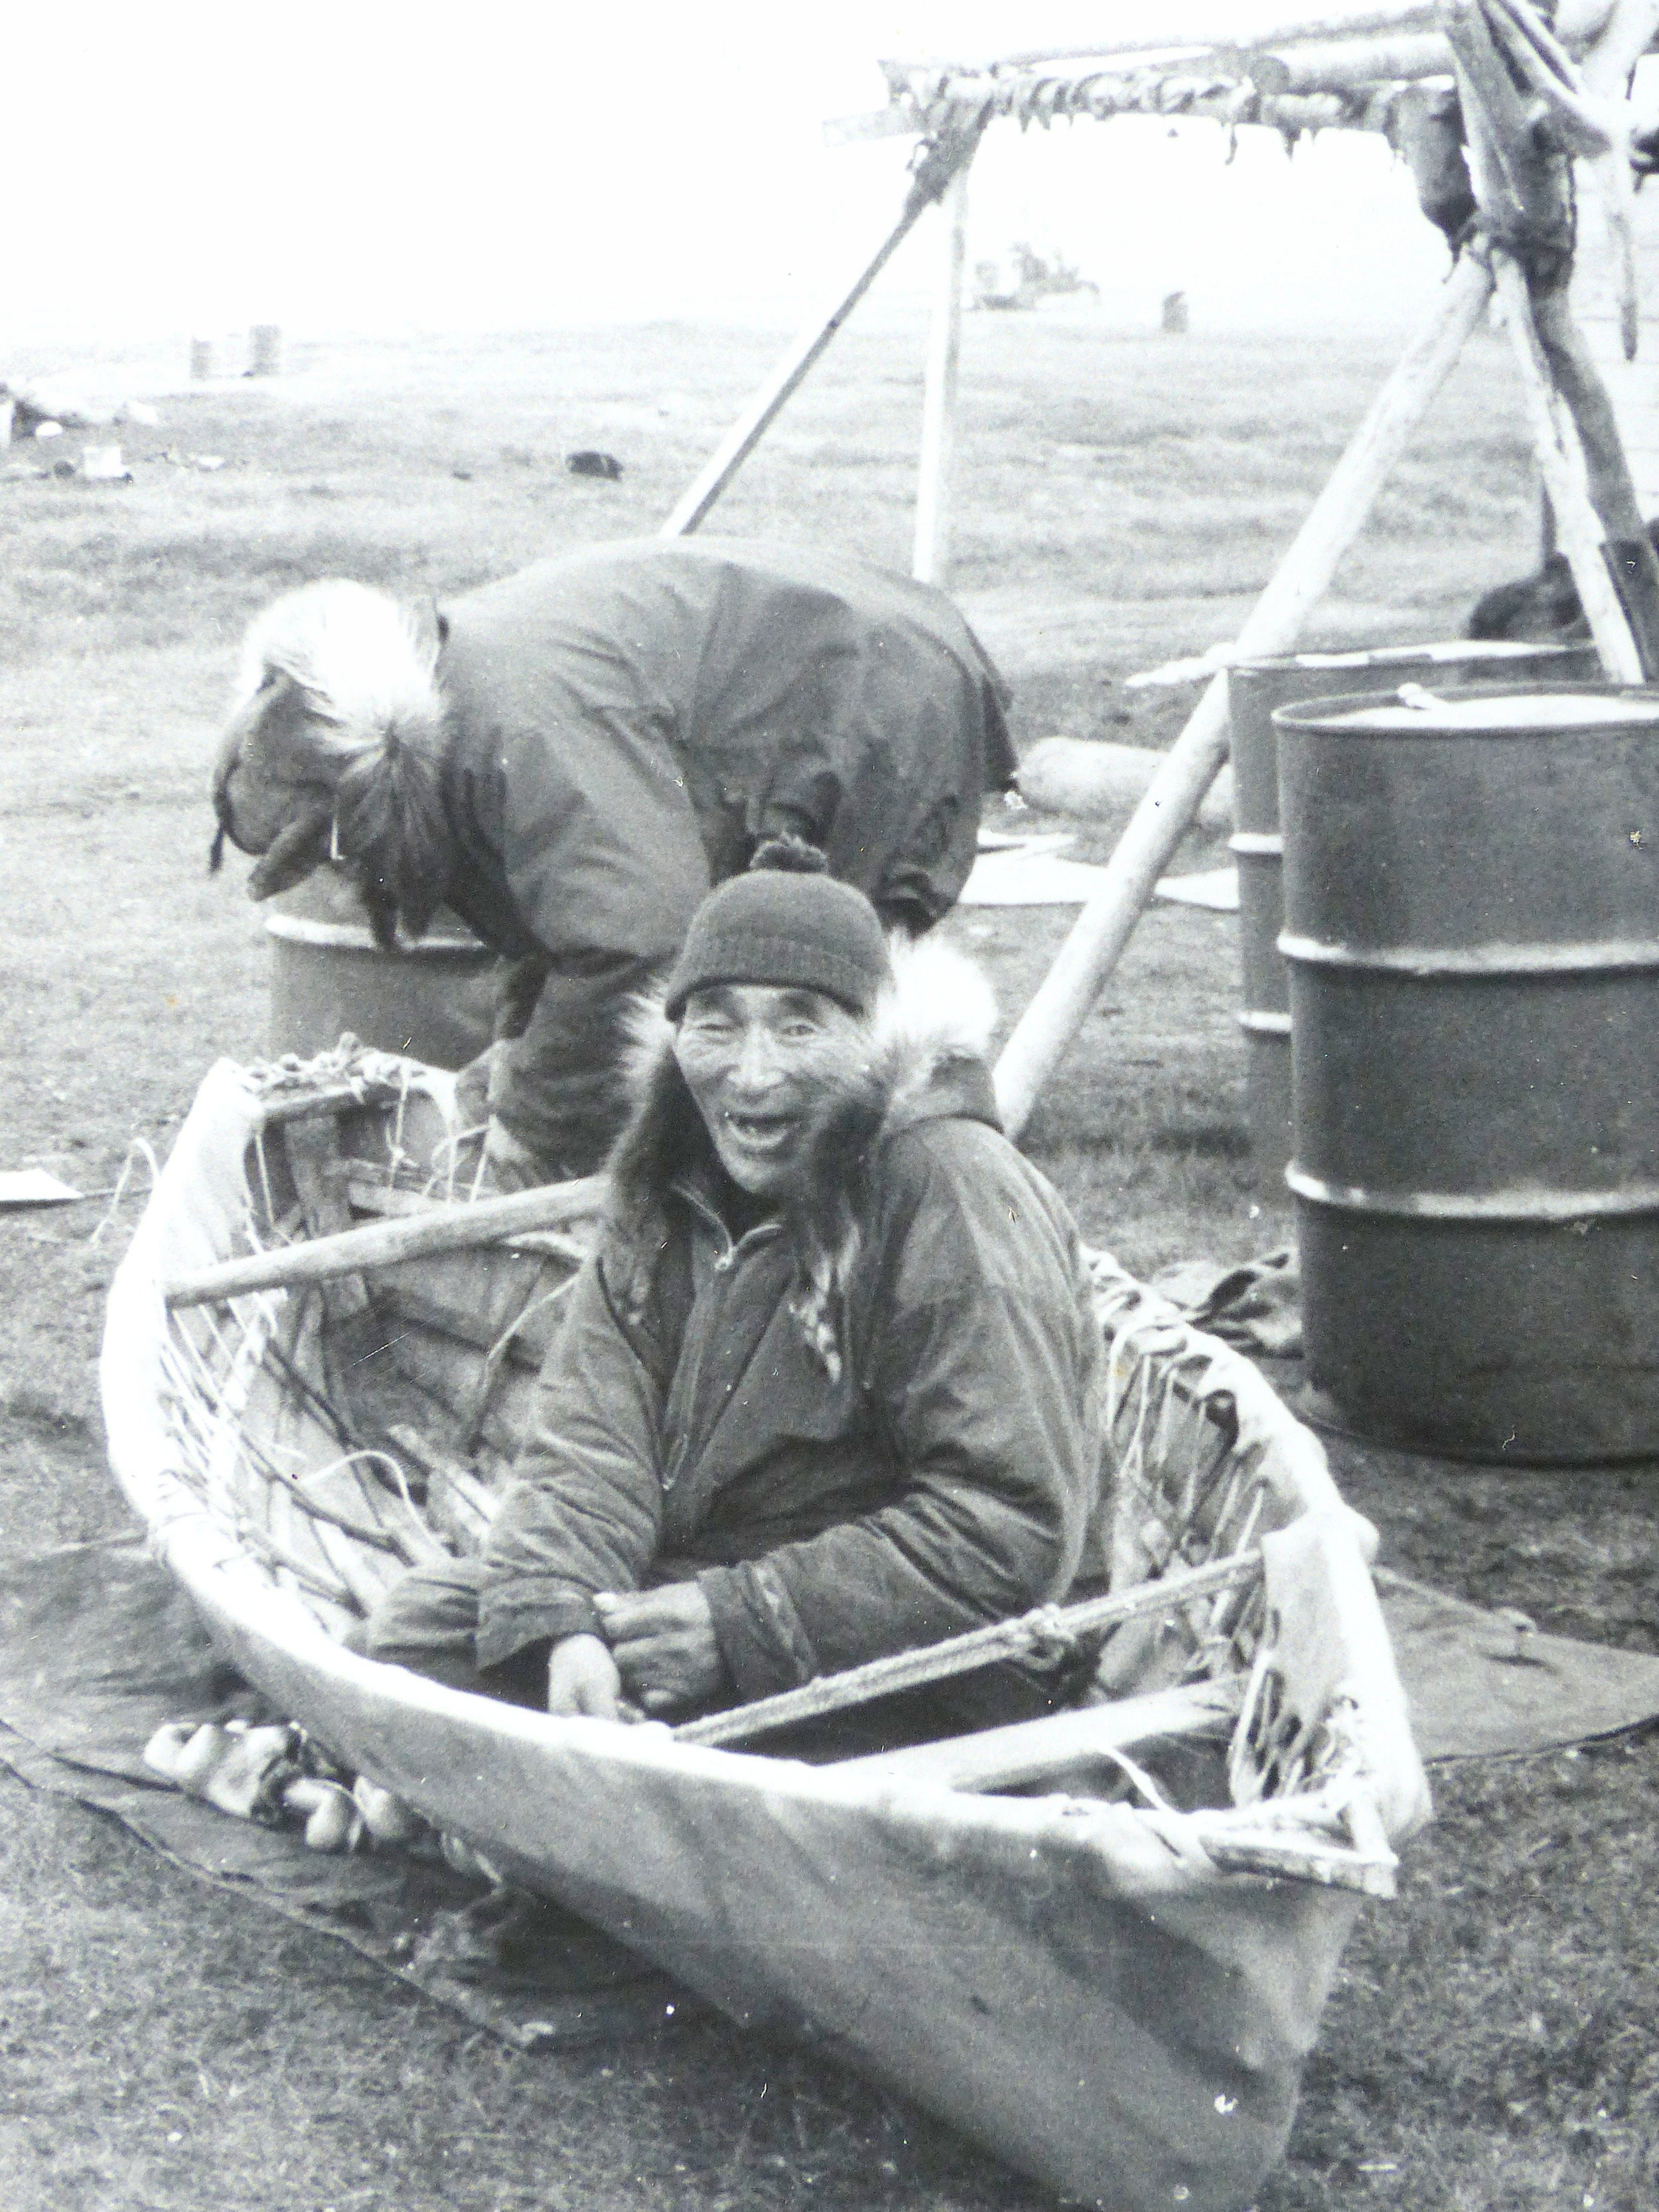 The late Inupiaq elders, Wesley Ekak (foreground) and Waldo Bodfish, lashing the sealskin cover on a small traditional boat (Wainwright village, 1964).